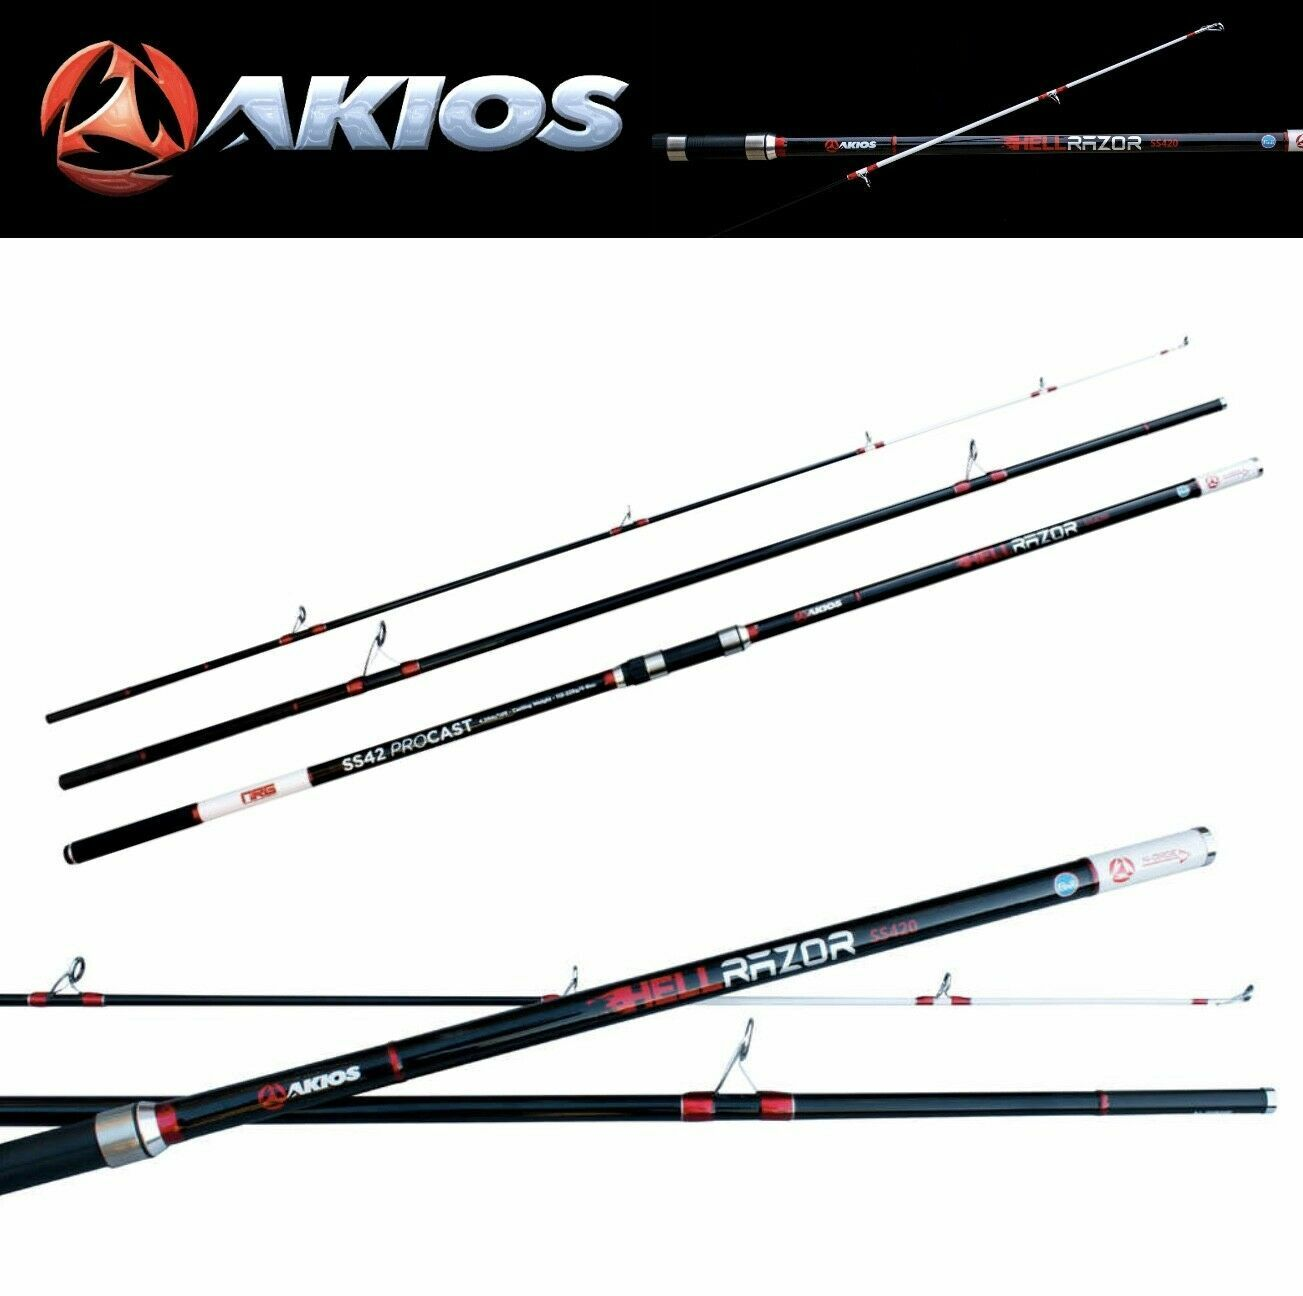 AKIOS  SURFCASTING ROD HELLRAZOR SS420  sale online